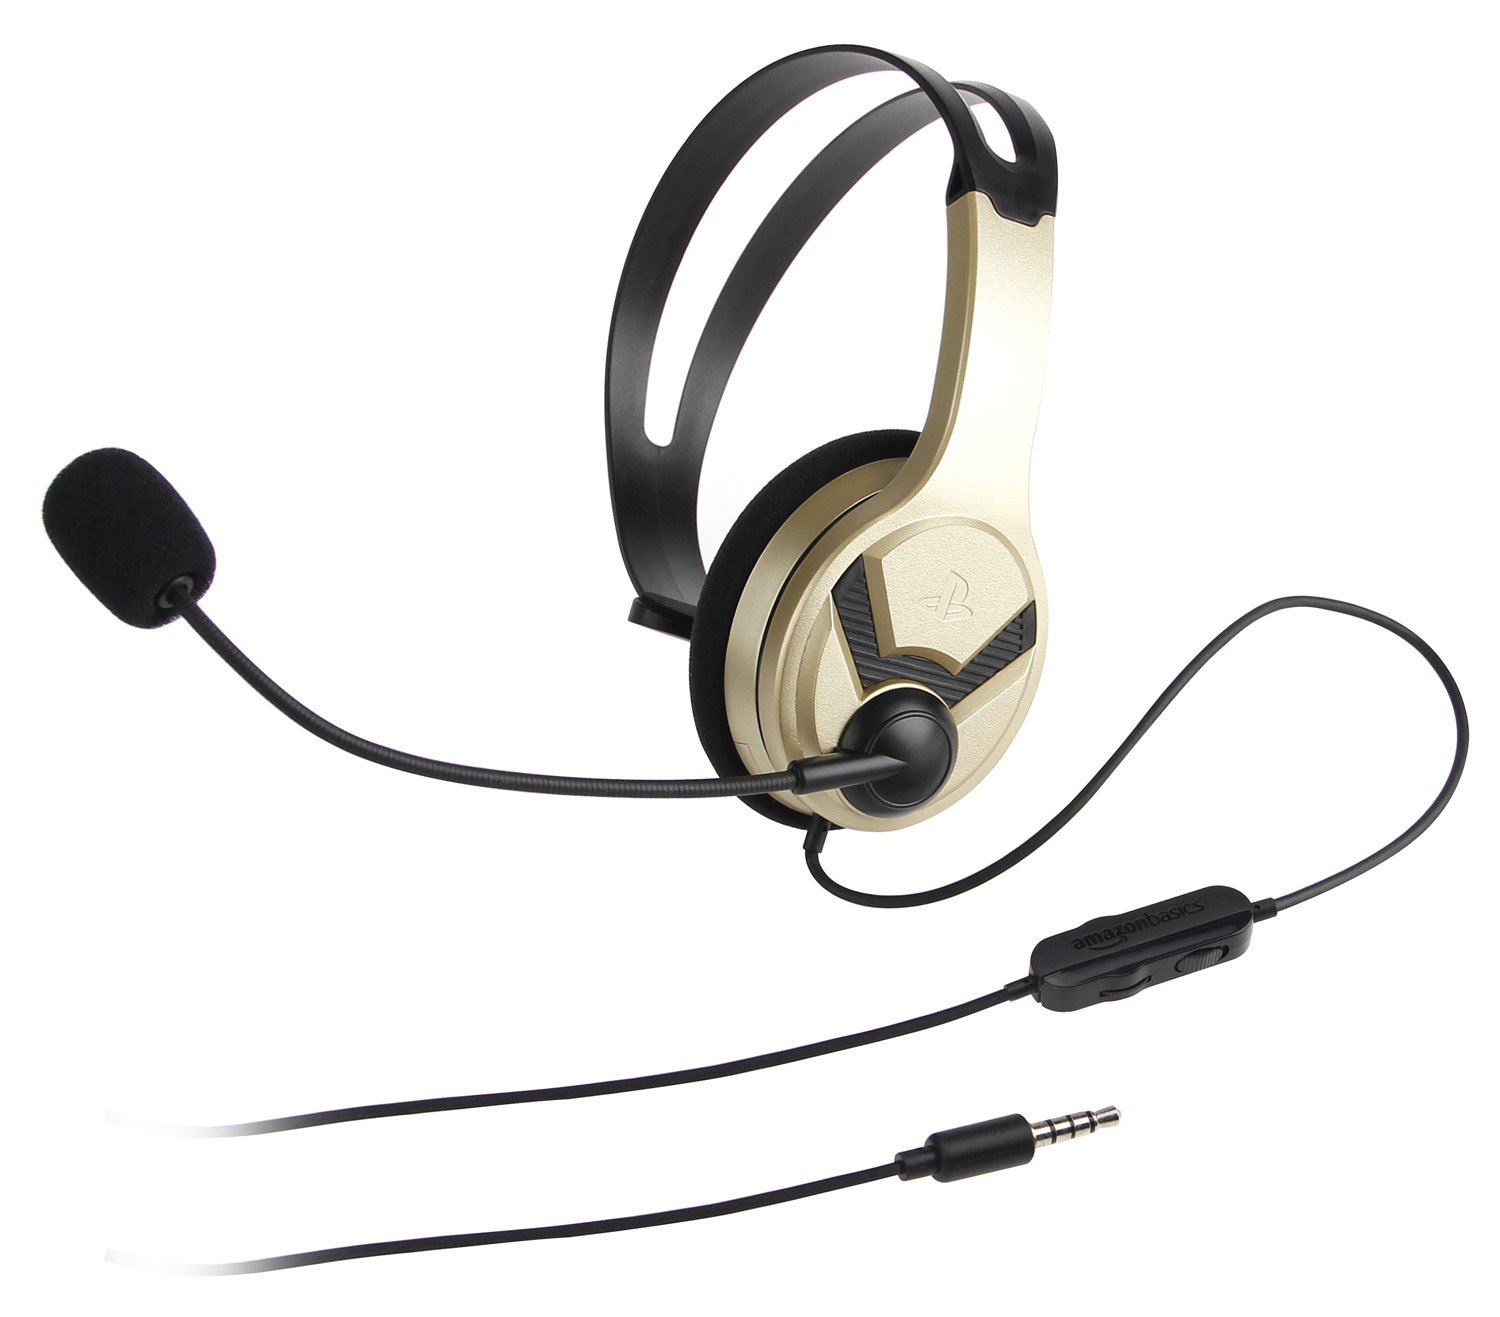 AmazonBasics Gaming Chat Headset for PlayStation 4 with Microphone - 4 Foot Cable, Gold